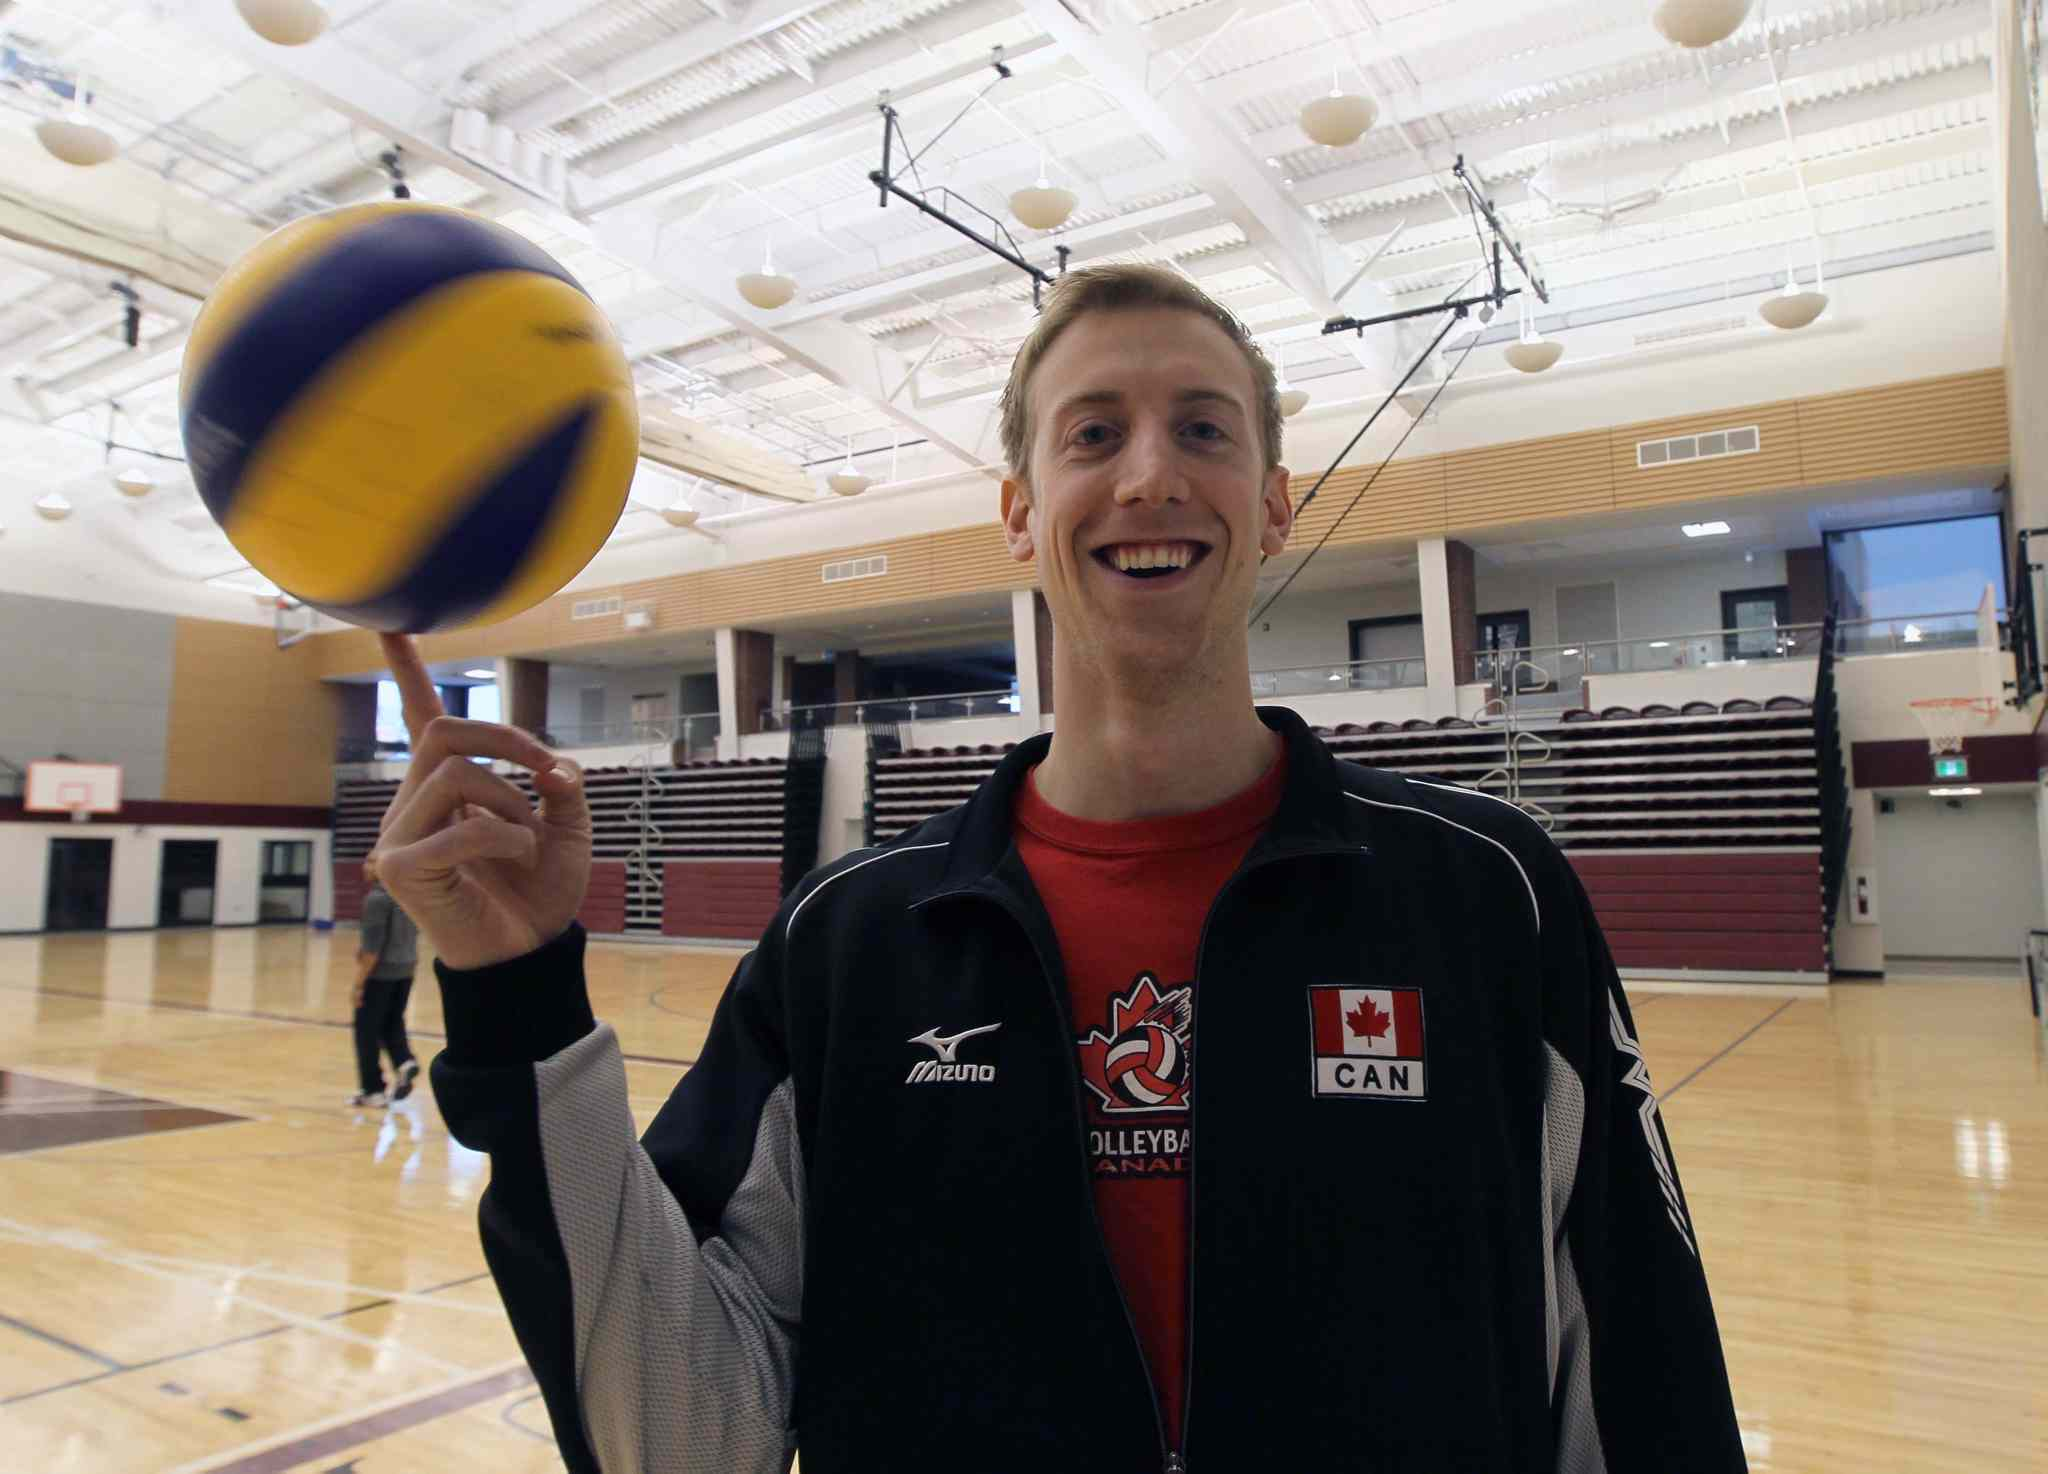 For Chris Voth, coming out wasn't about him. It was an opportunity to help others, particularly young athletes.